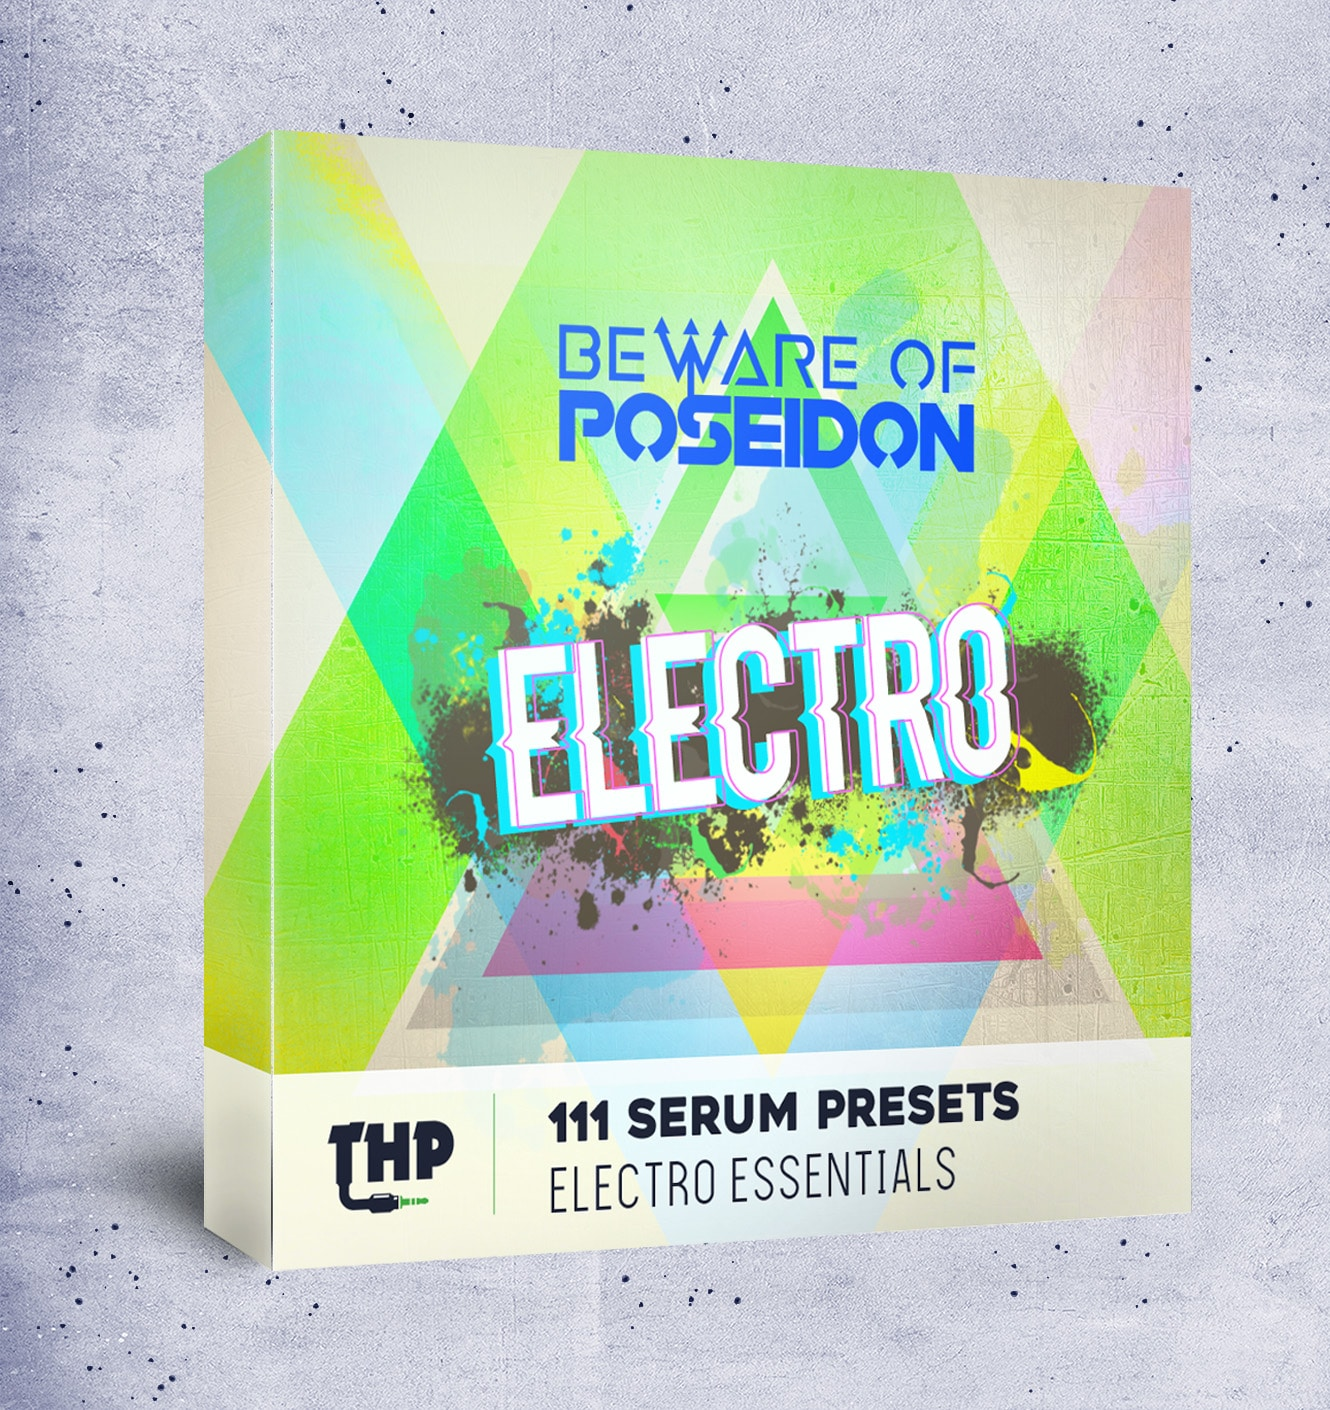 Electro Presets for Serum